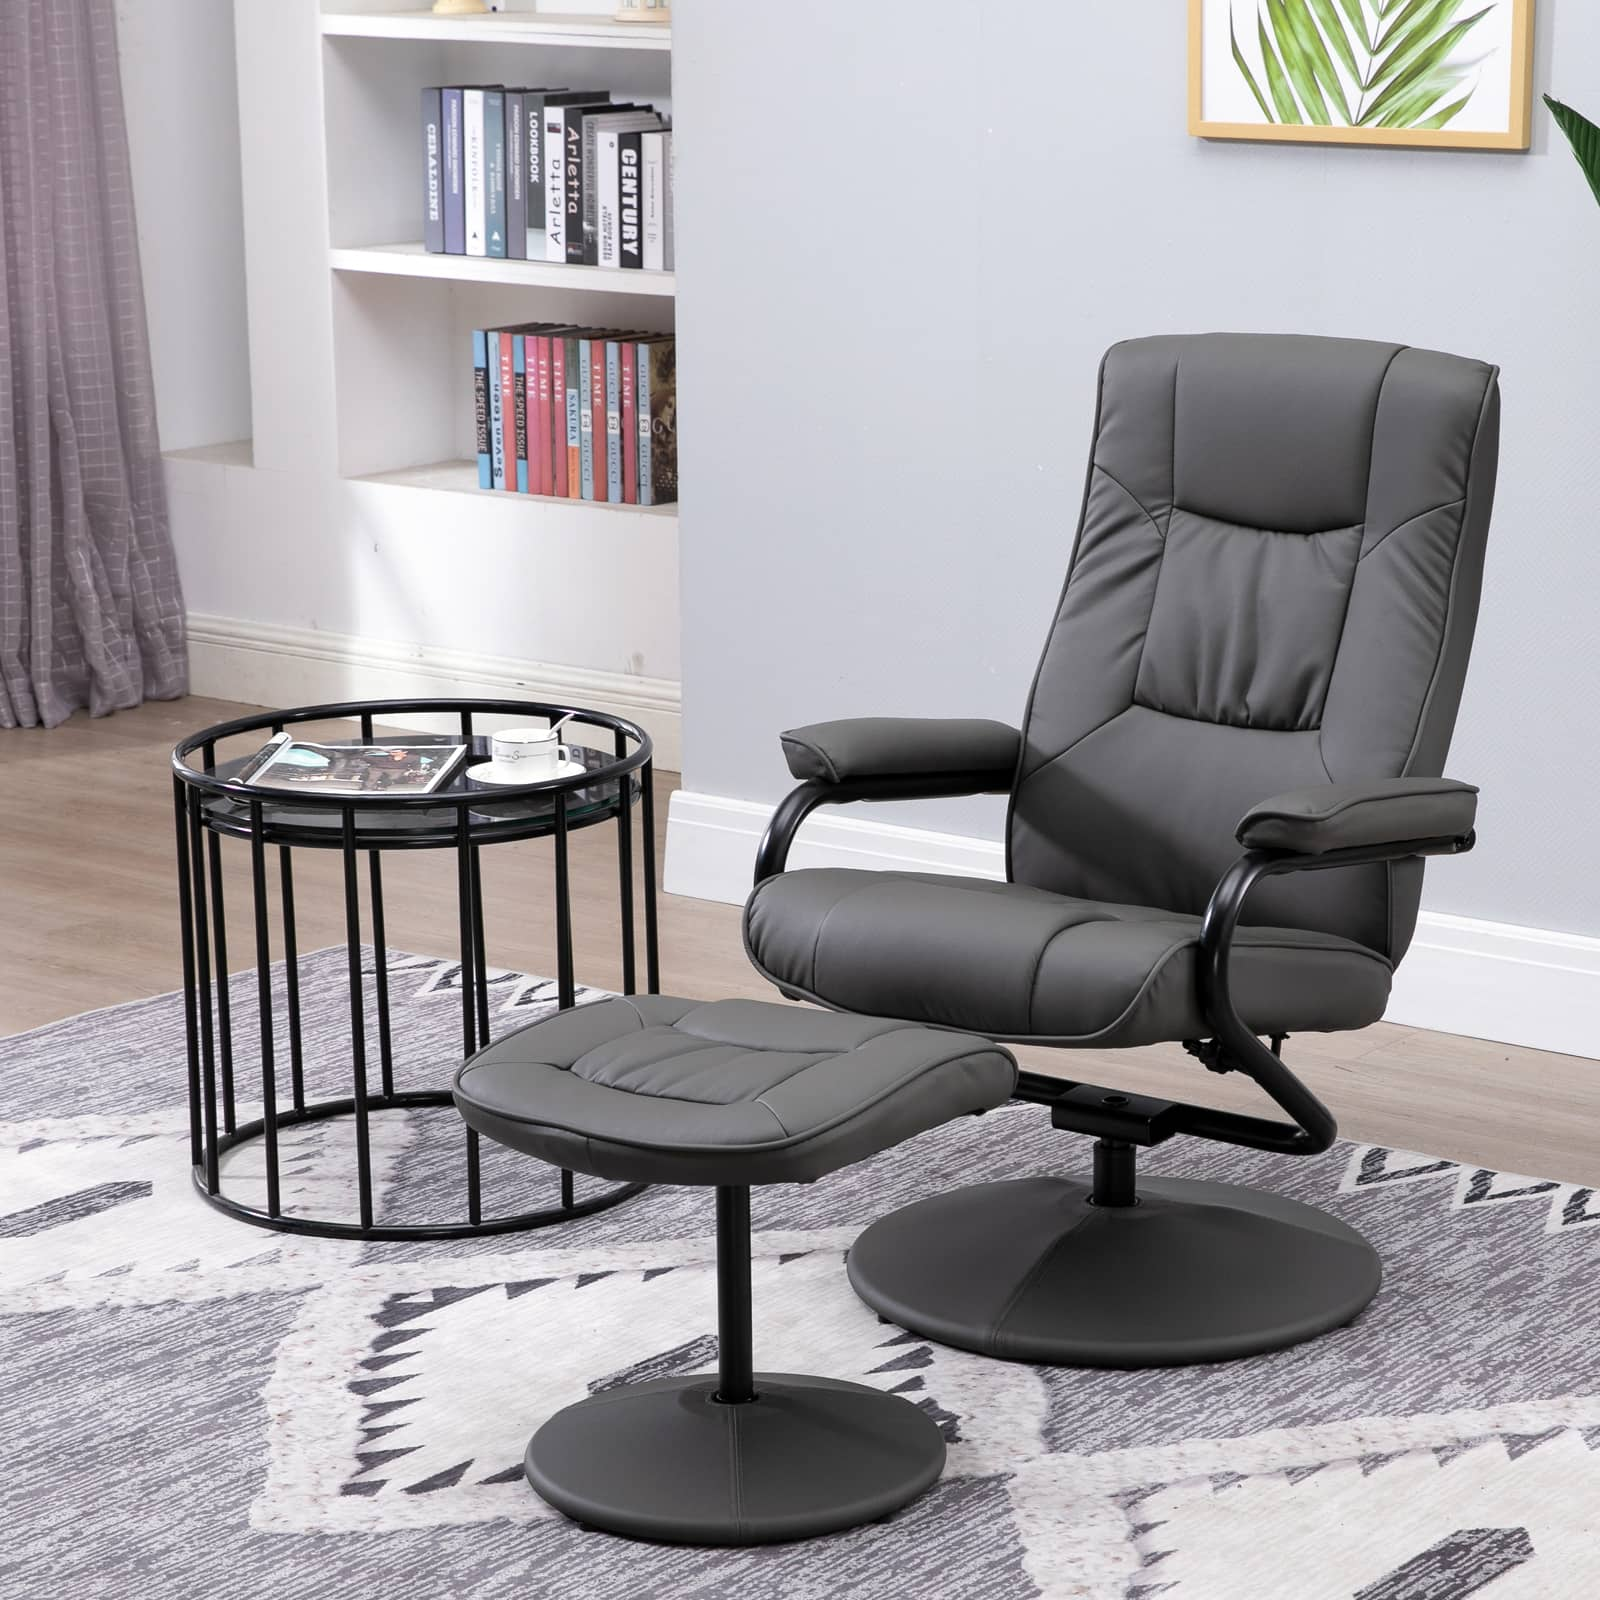 HOMCOM Faux Leather Recliner Chair and Ottoman Set - $99.99 + Free Shipping